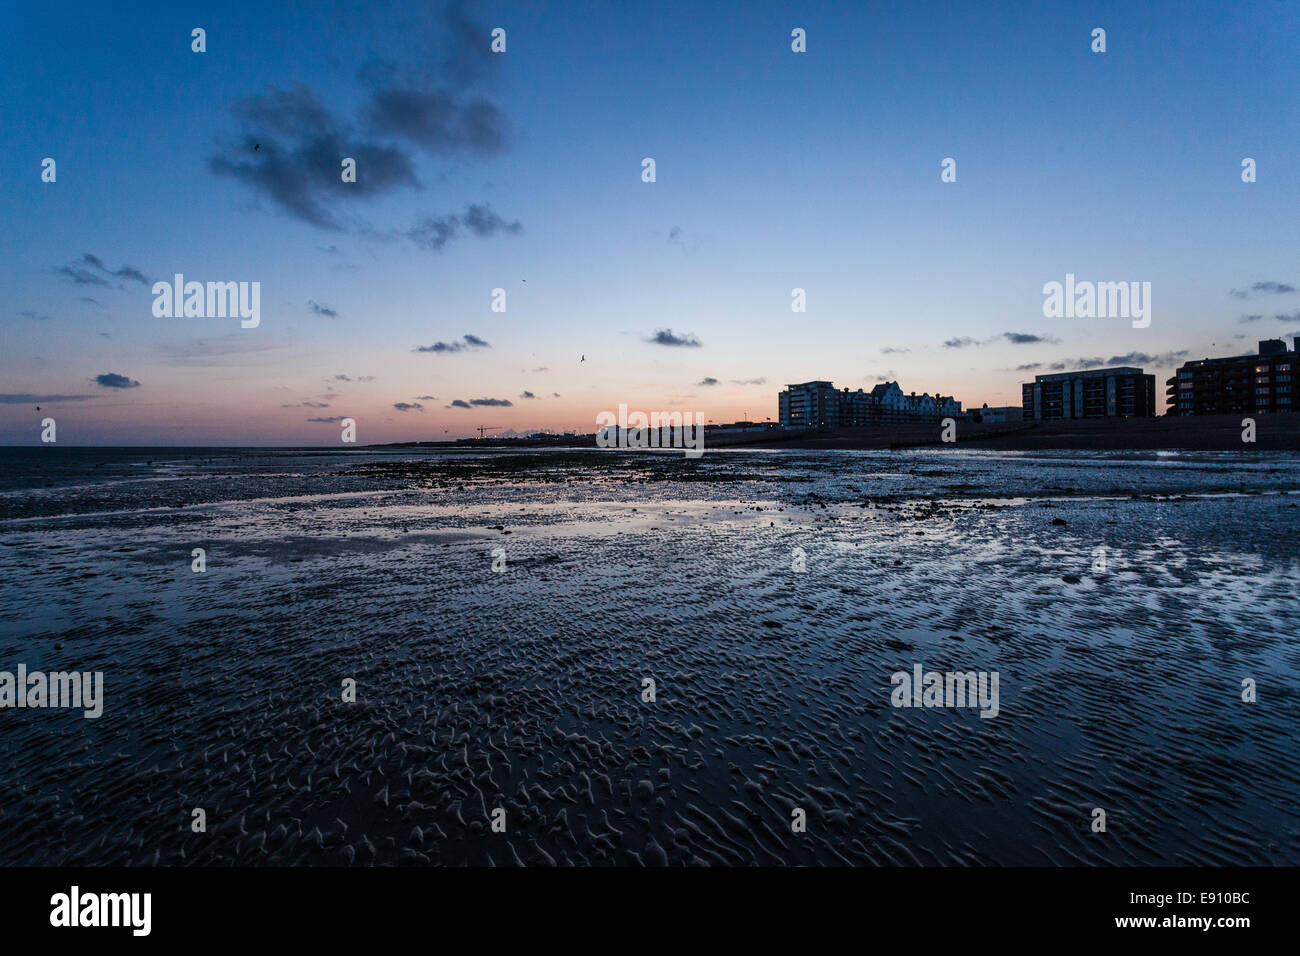 Low tide and twilight in Worthing, West Sussex, UK - Stock Image